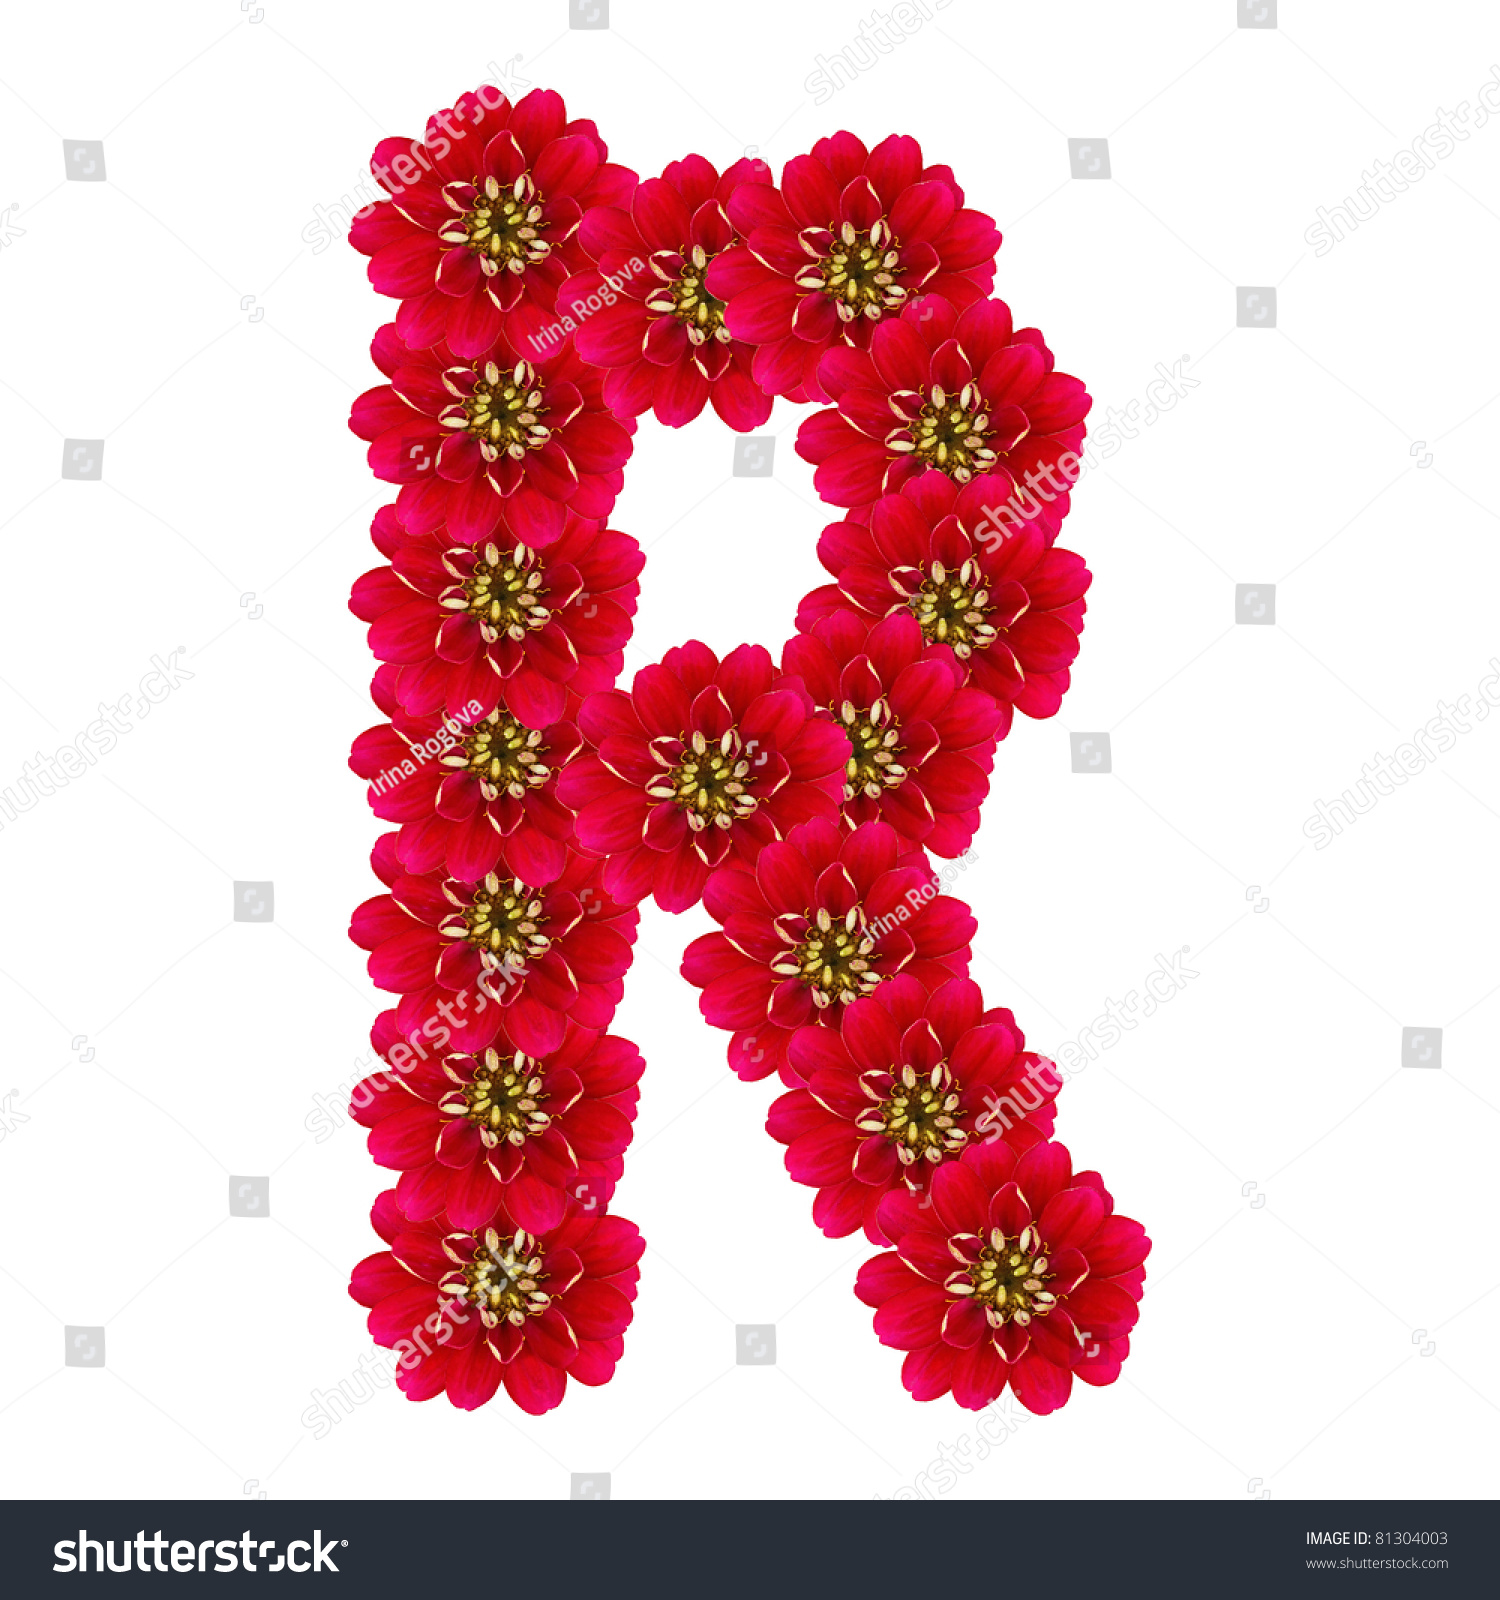 Royalty free letter r from red flowers 81304003 stock photo letter r from red flowers altavistaventures Choice Image